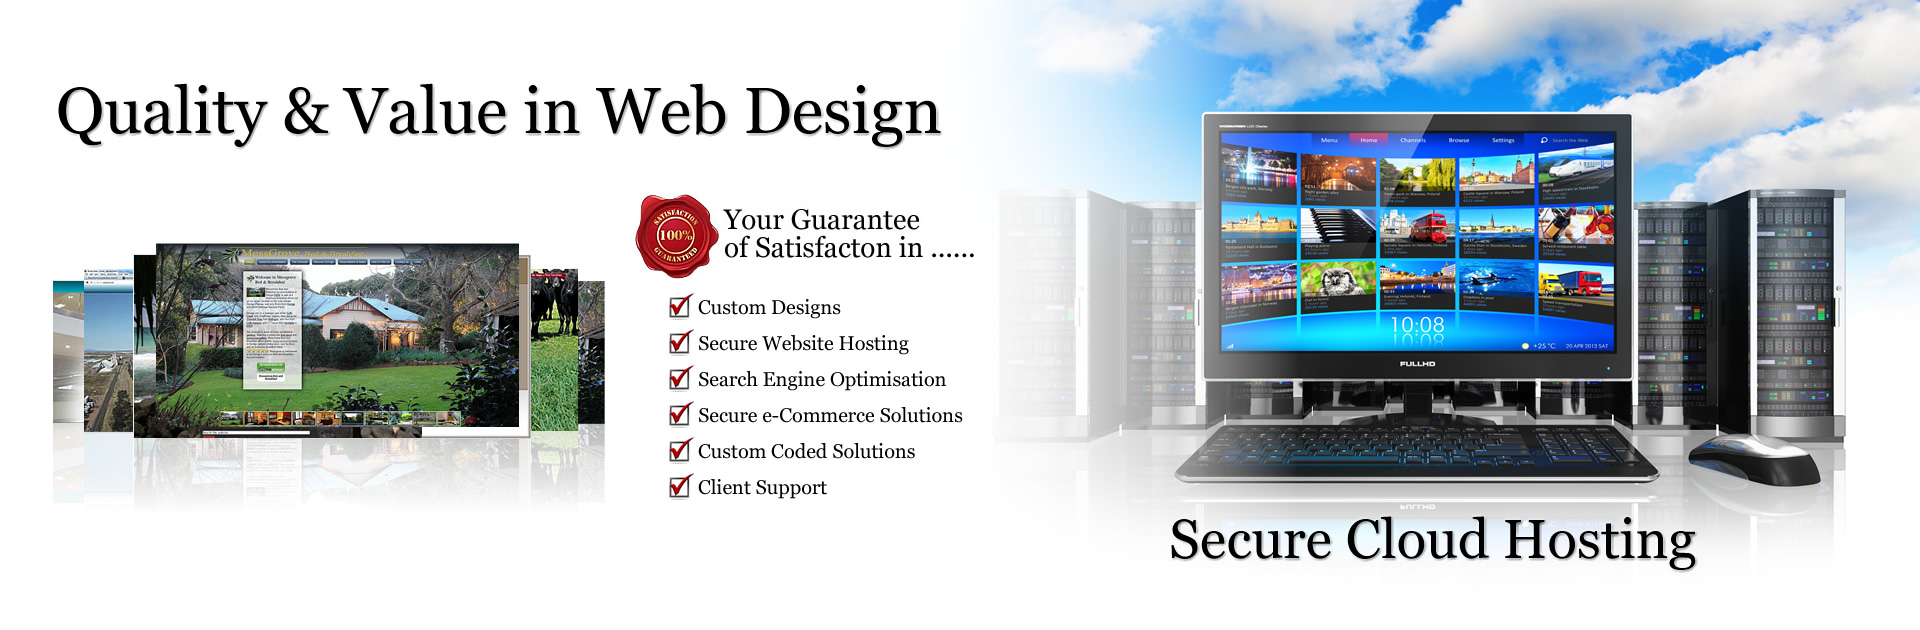 web-design-cloud-hosting